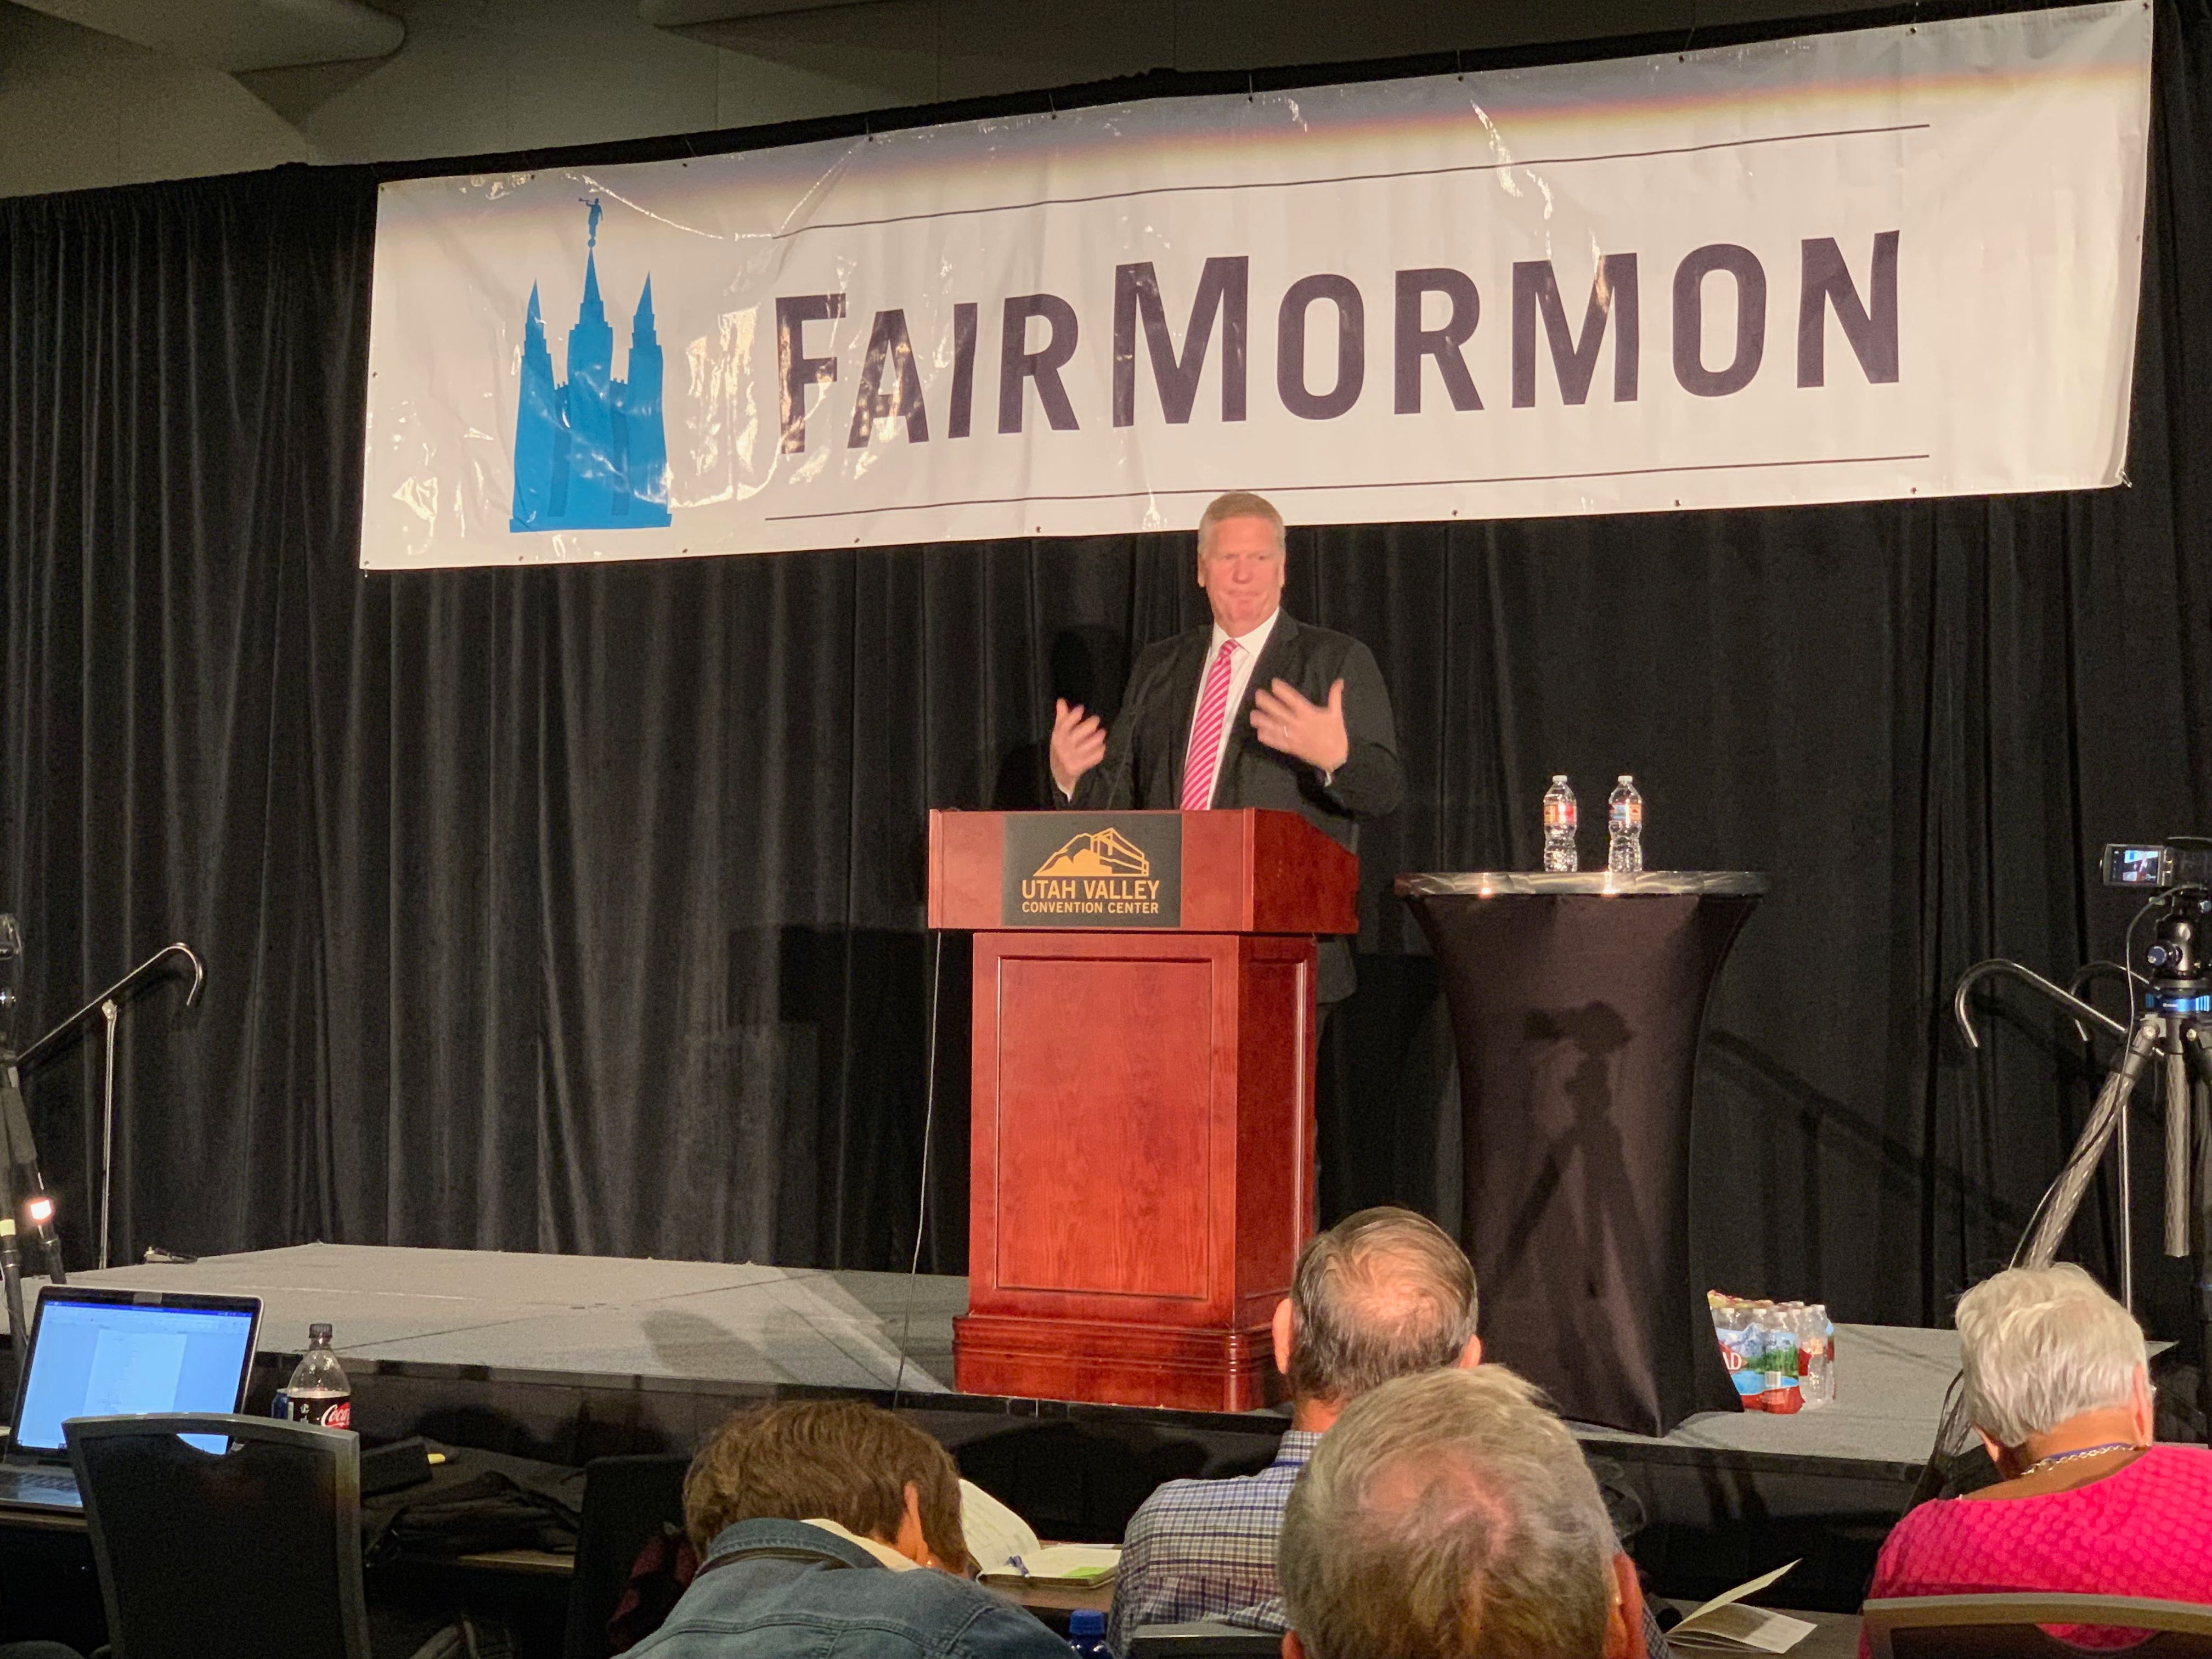 Elder Craig C. Christensen, General Authority Seventy, speaks during the FairMormon conference on Friday, Aug. 9, 2019 at the Utah Valley Convention Center in Provo, Utah.